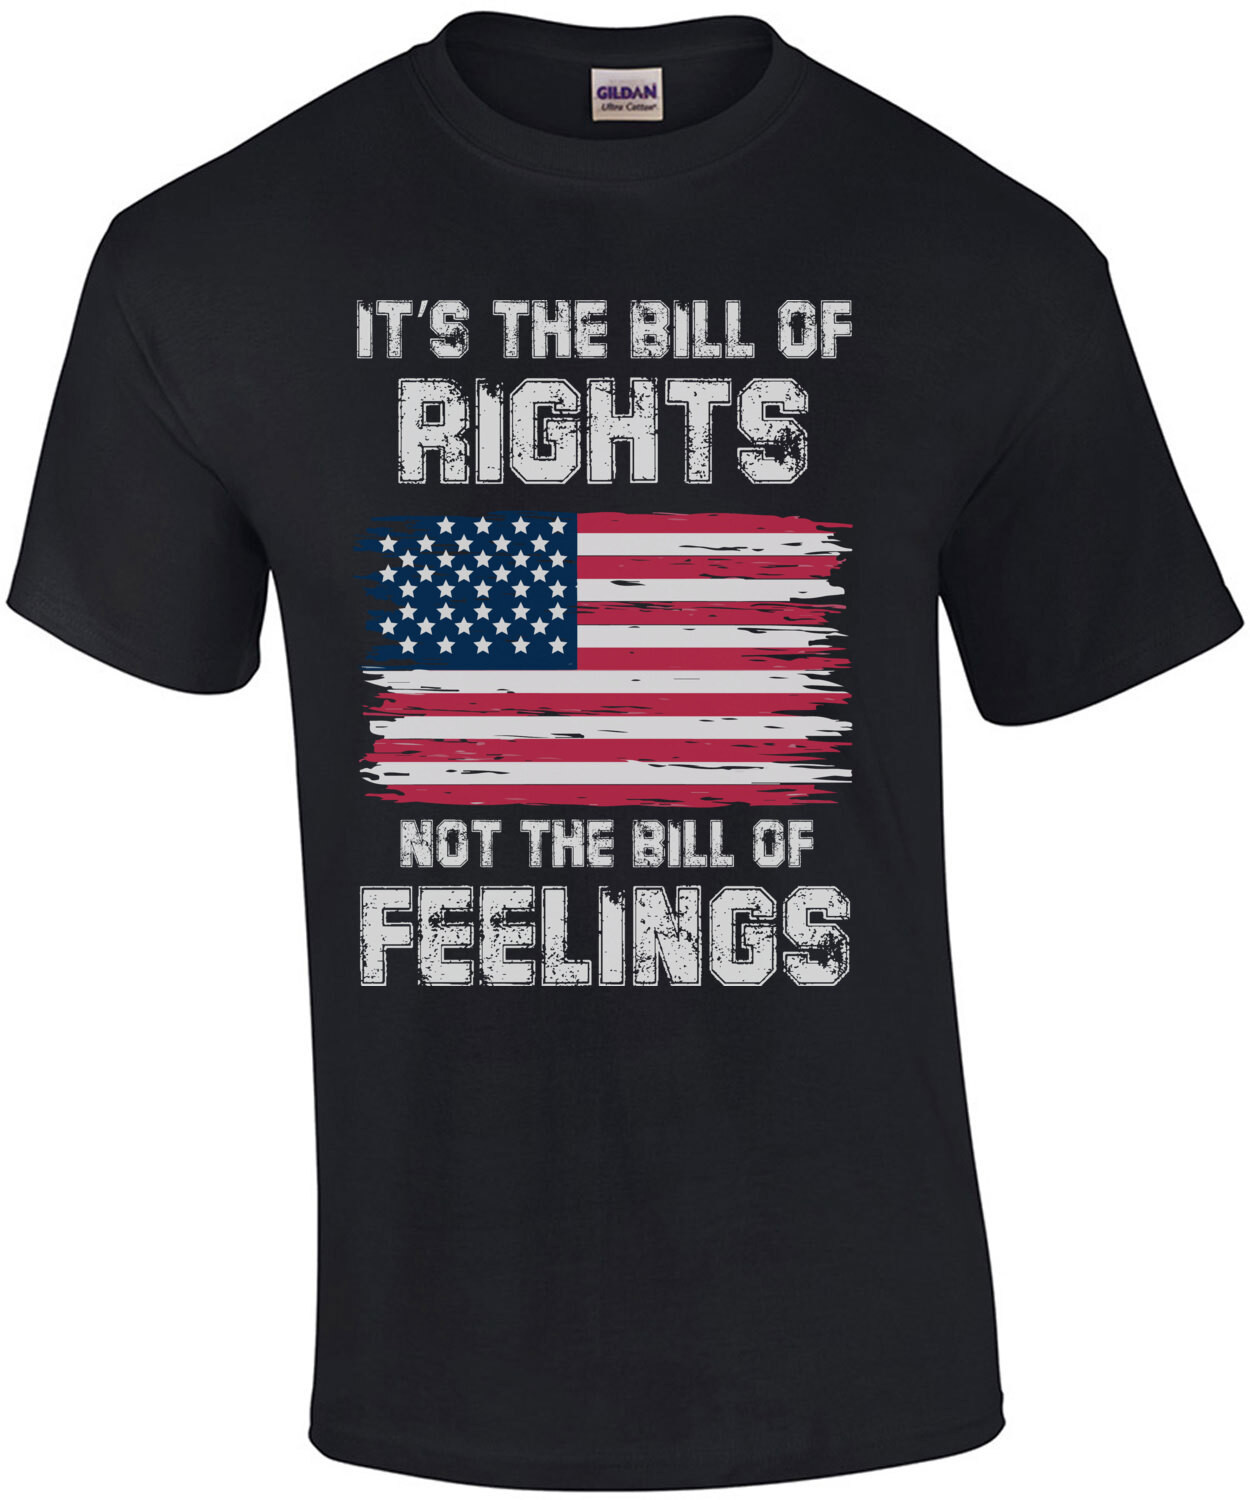 It's the bill of rights not the bill of feelings - funny political t-shirt